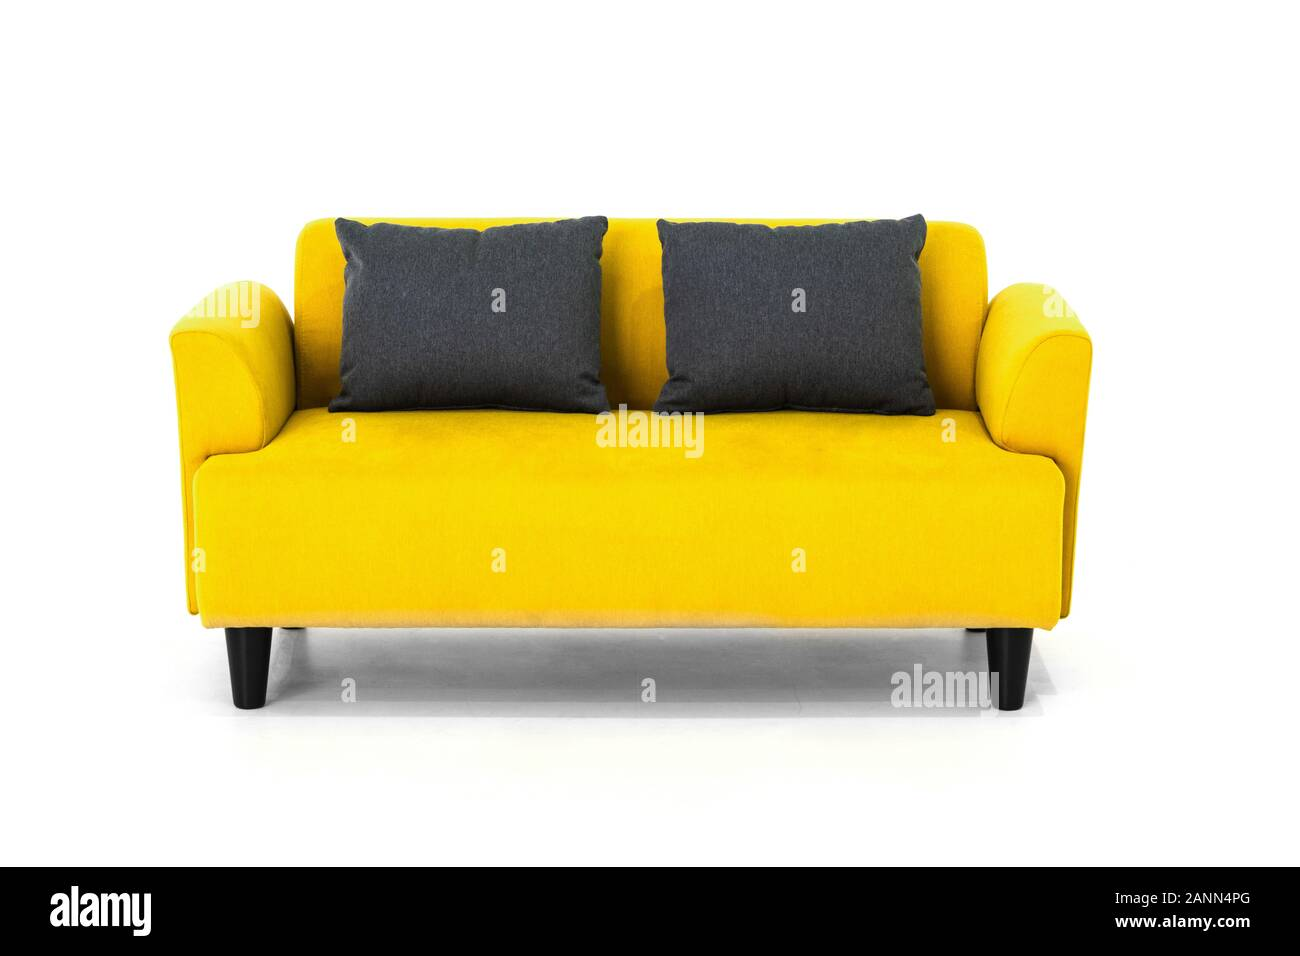 Yellow Scandinavian Style Contemporary Sofa On White Background With Modern And Minimal Furniture Design For Stylish Living Room Stock Photo Alamy